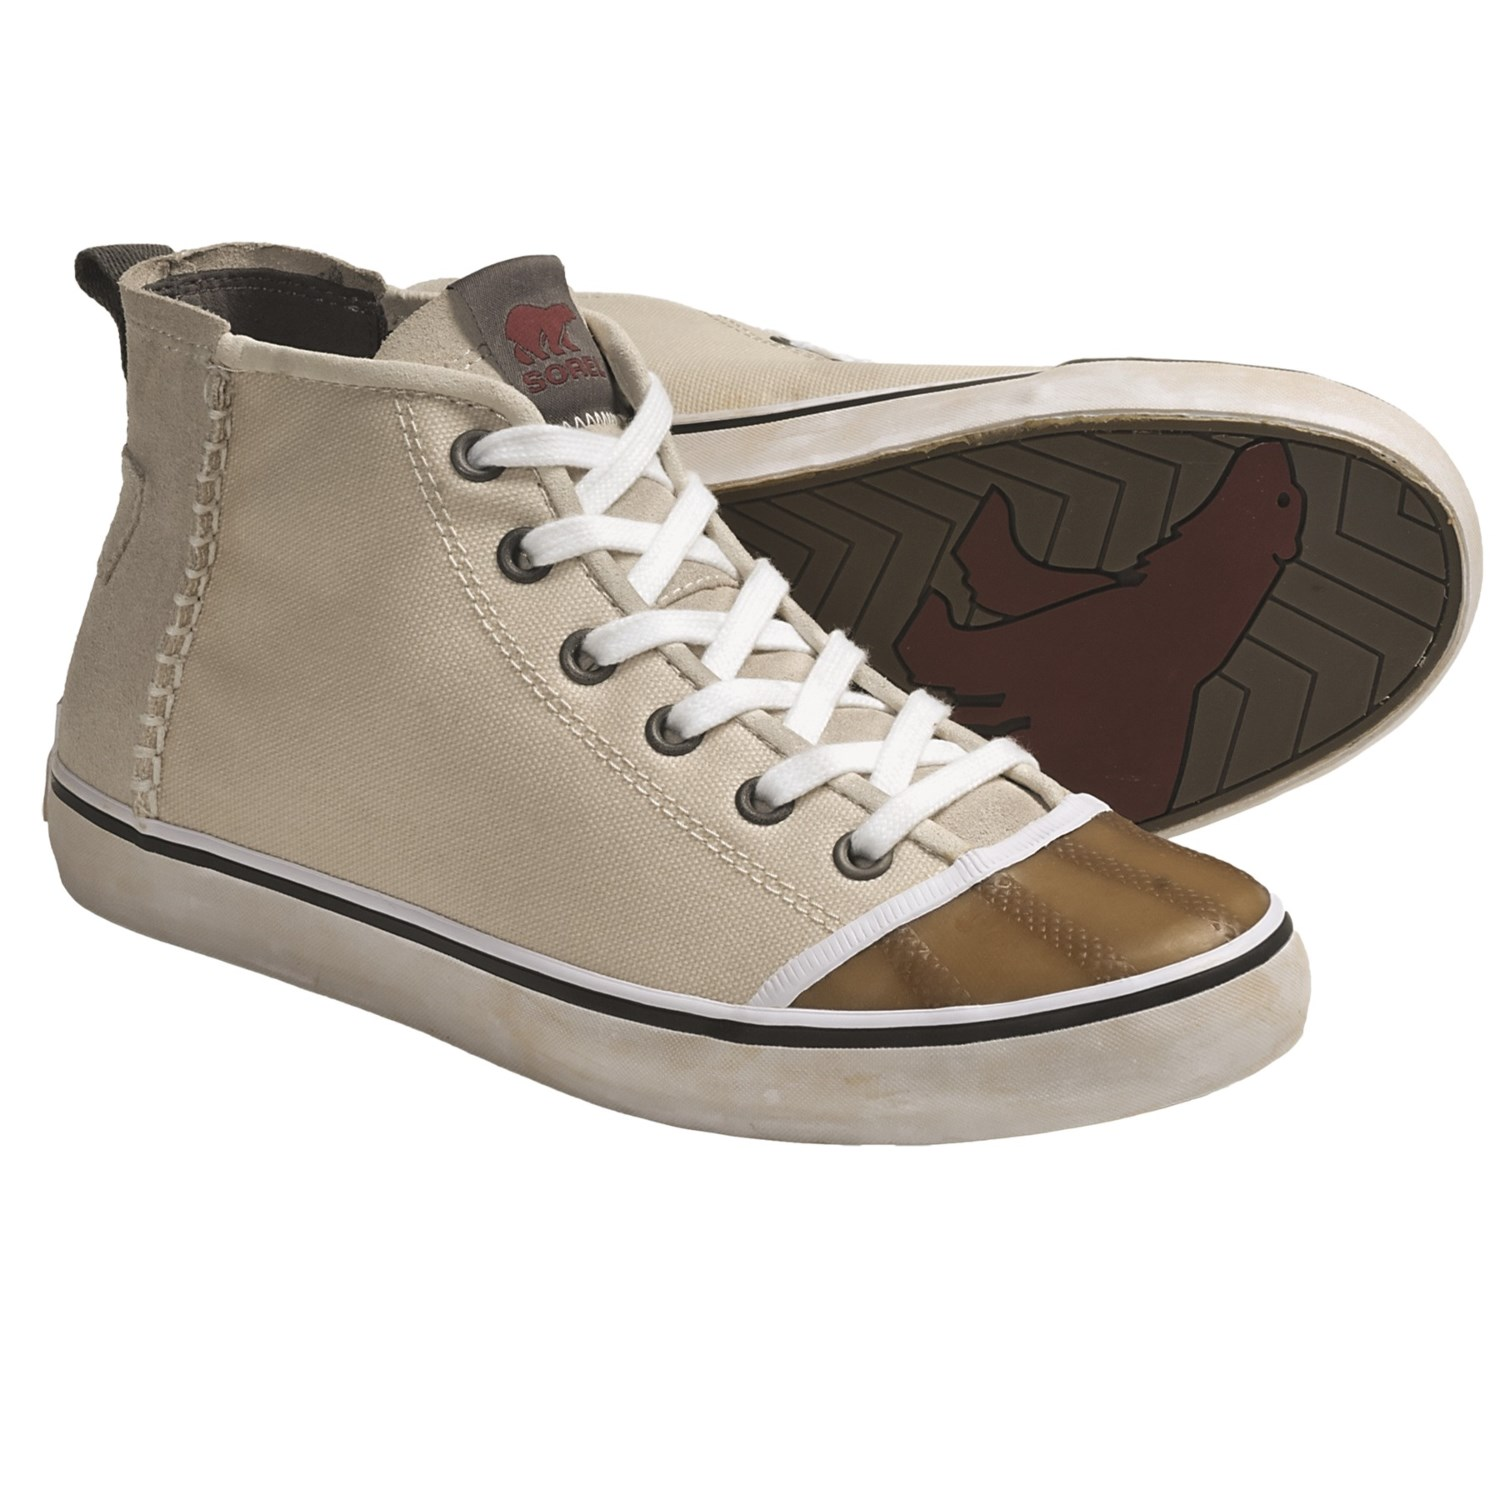 sorel-sentry-mid-canvas-sneakers-for-women-in-white-swan~p~4741p_02